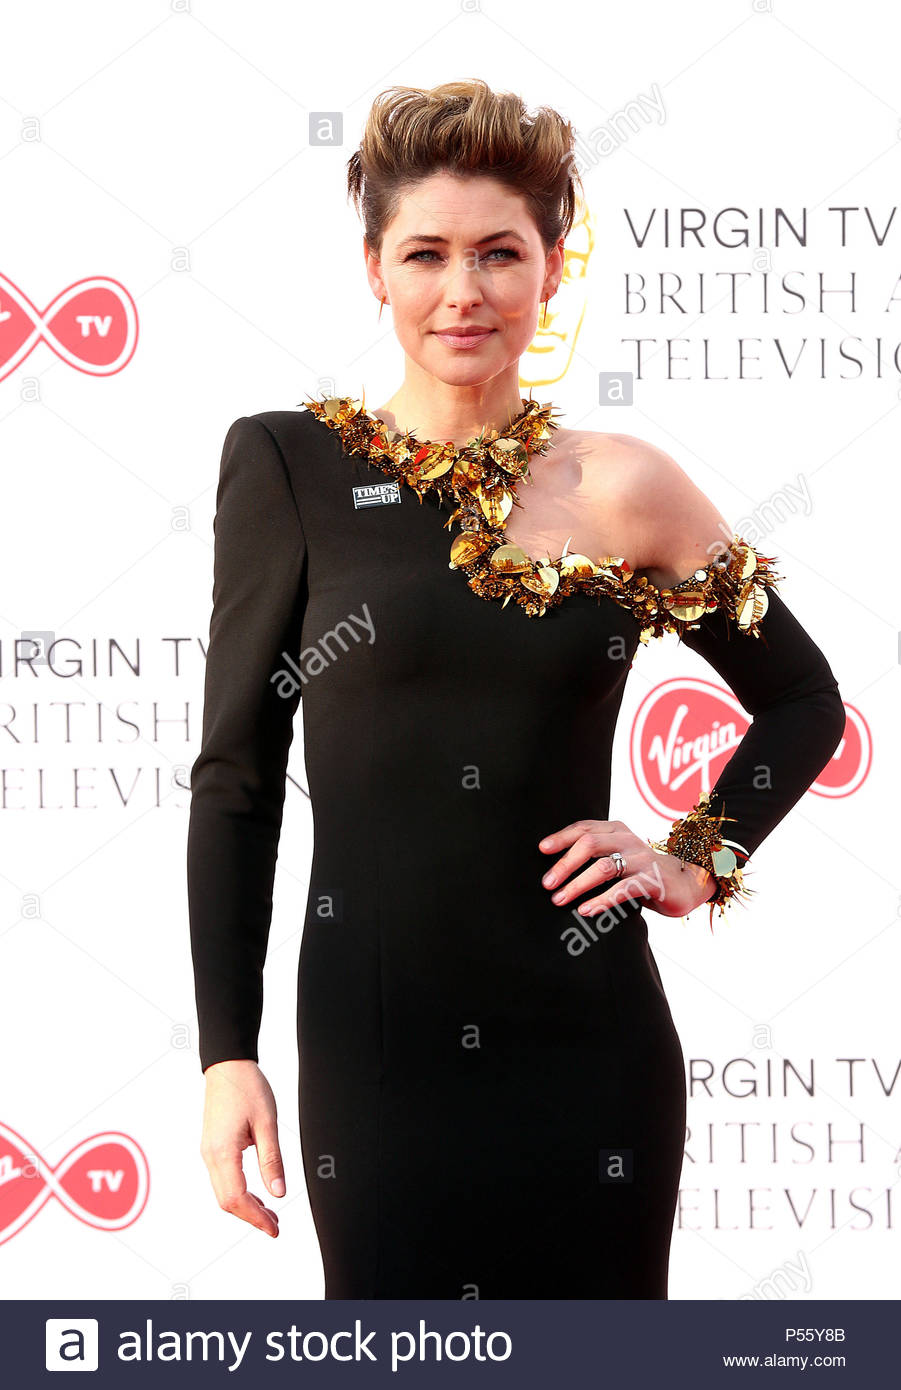 File photo dated 13/05/18 of Emma Willis, who says she has imposter syndrome and worries that her work will dry up despite her success as a TV presenter. - Stock Image